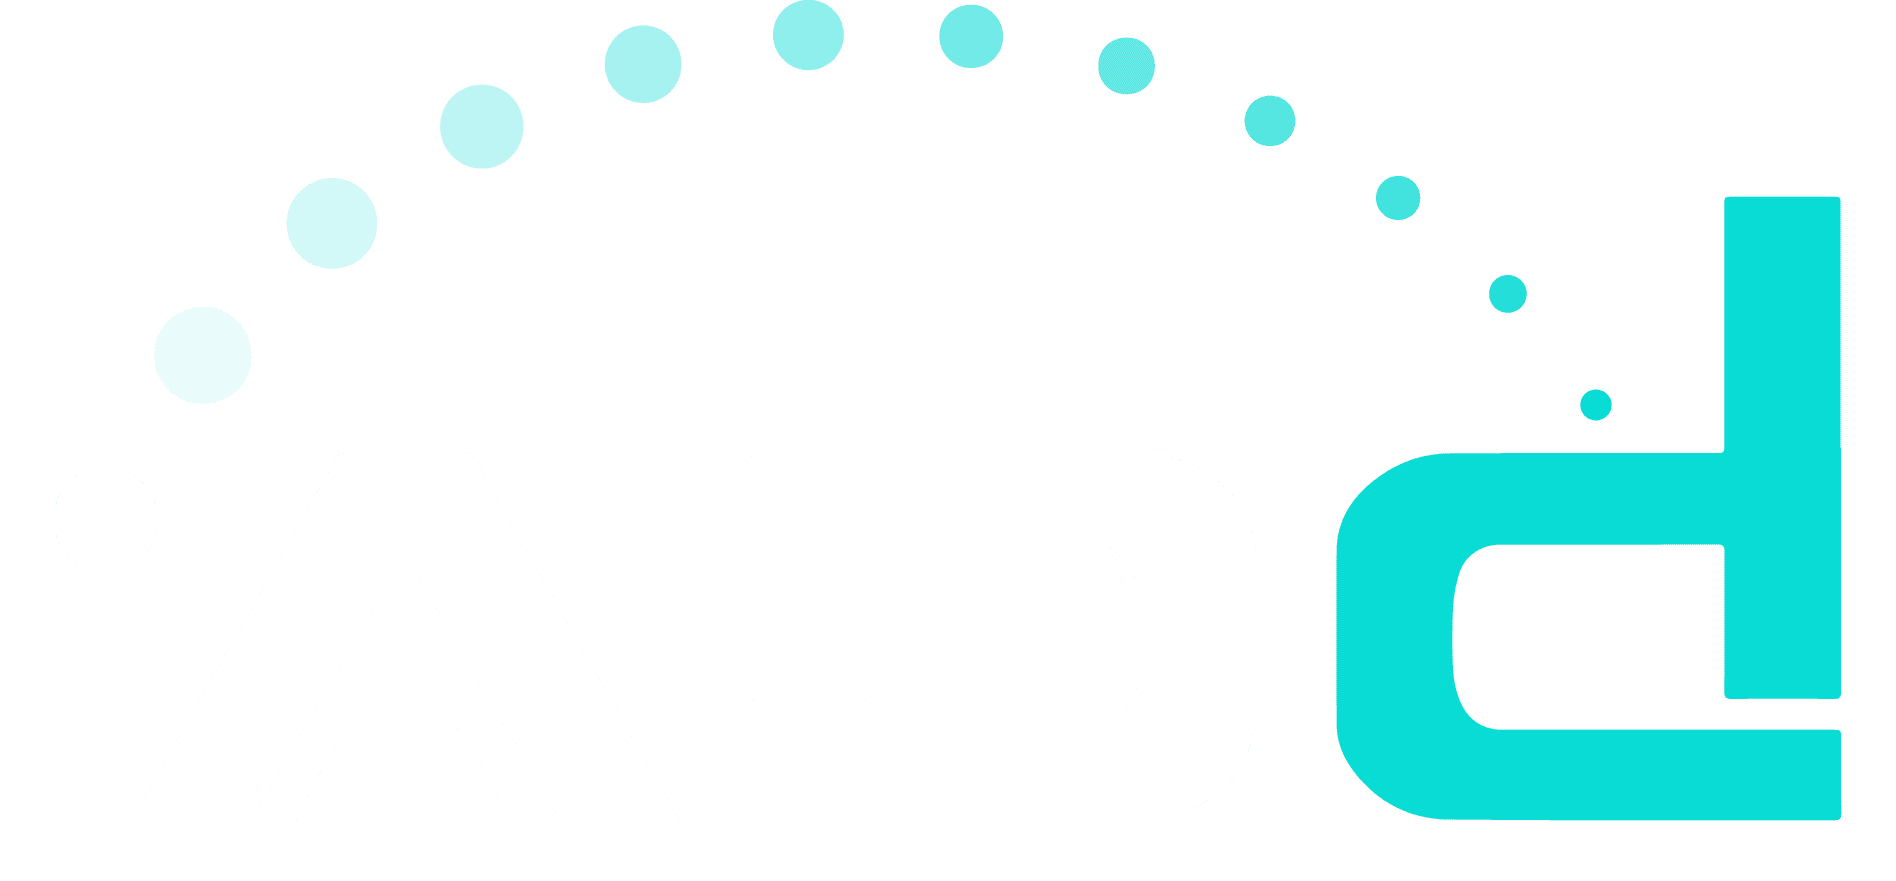 AddTechnologies-webdesign-digital-marketing-company-logo